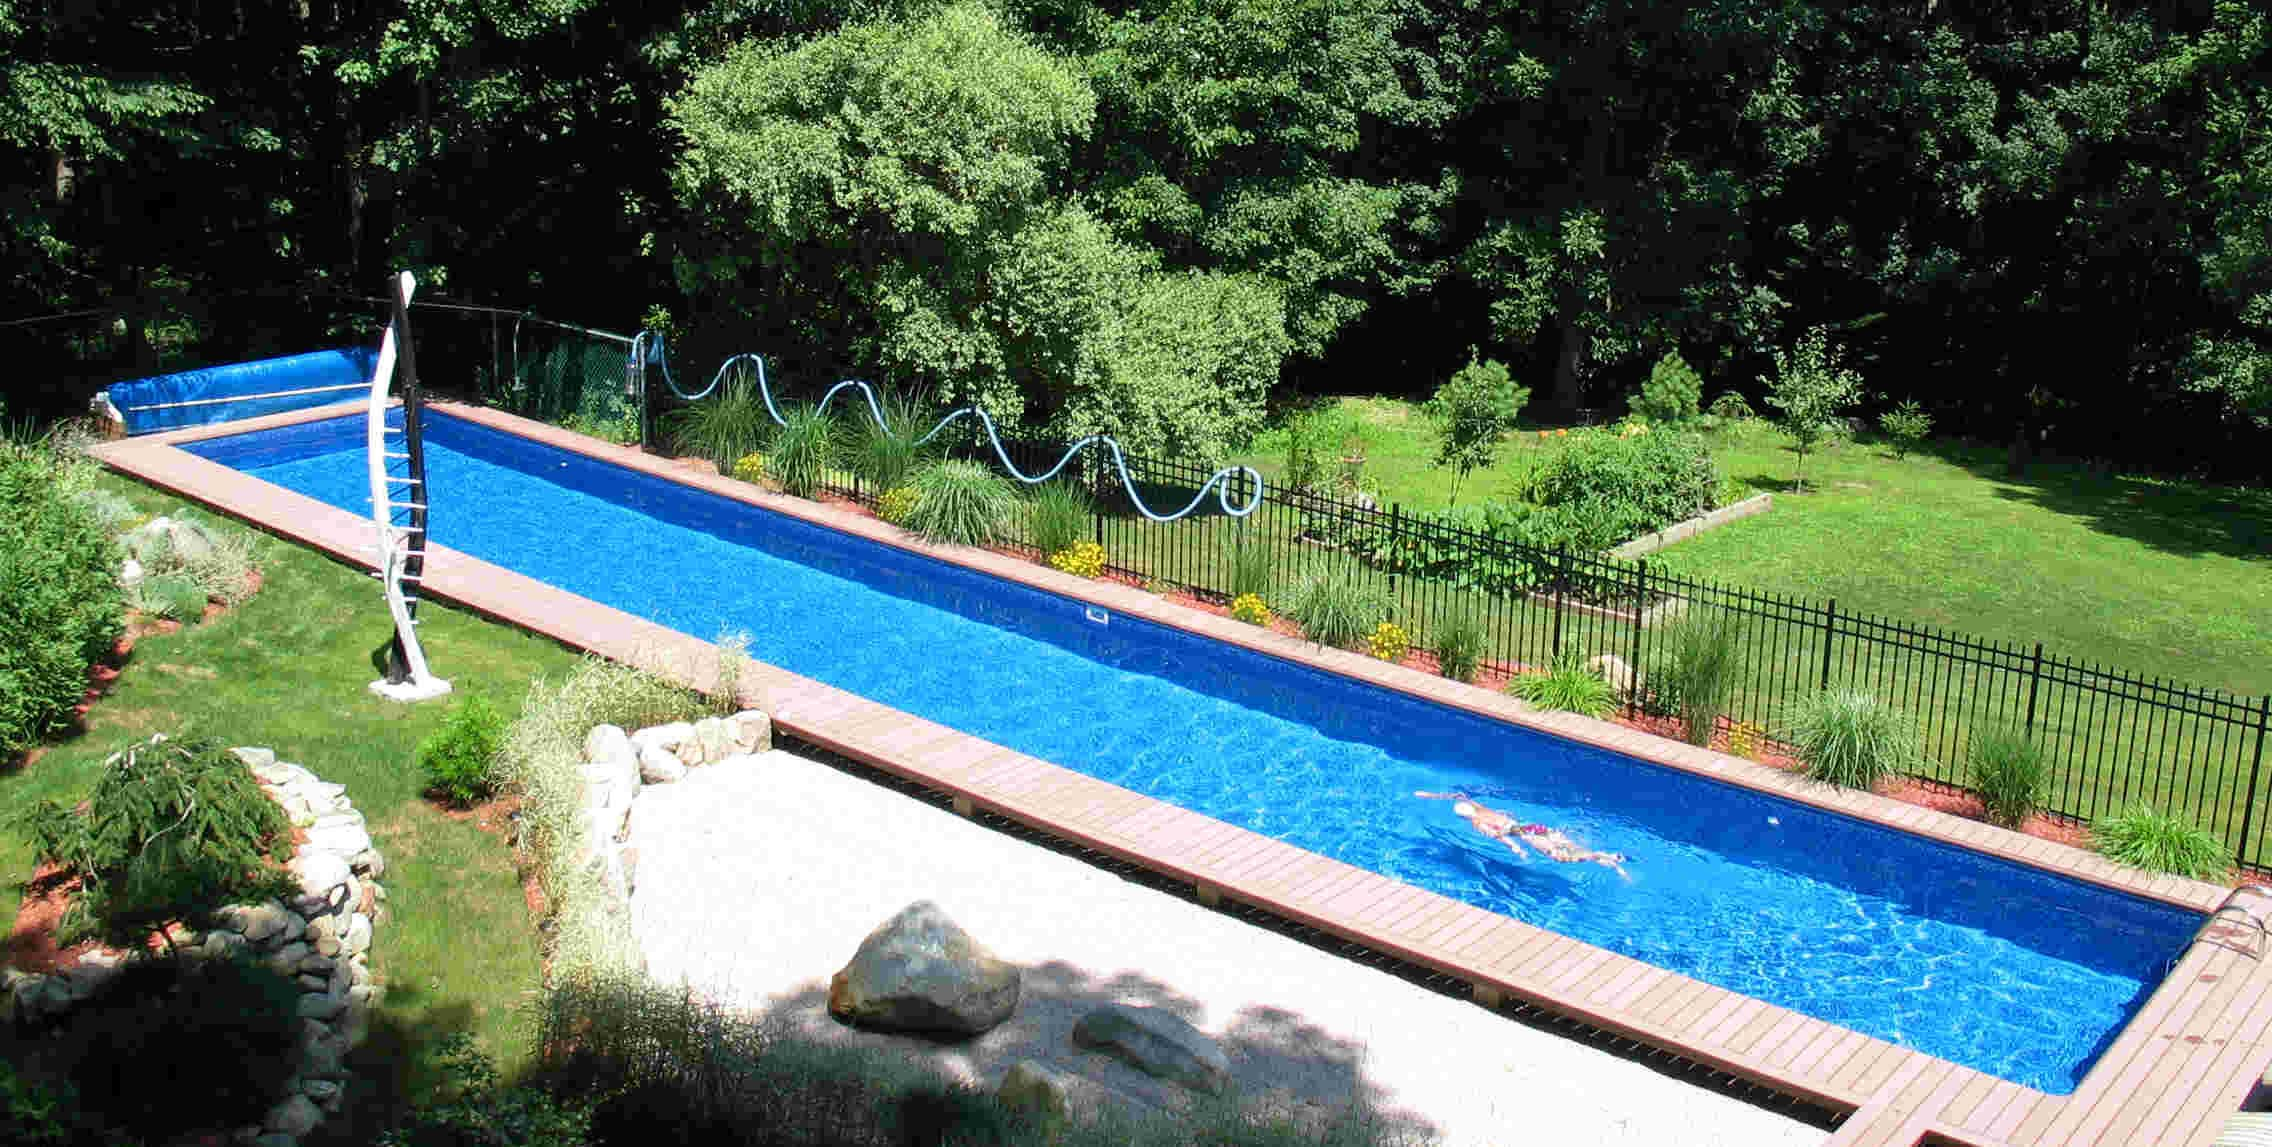 Diy inground swimming pool backyard design ideas for Swimming pool ideas